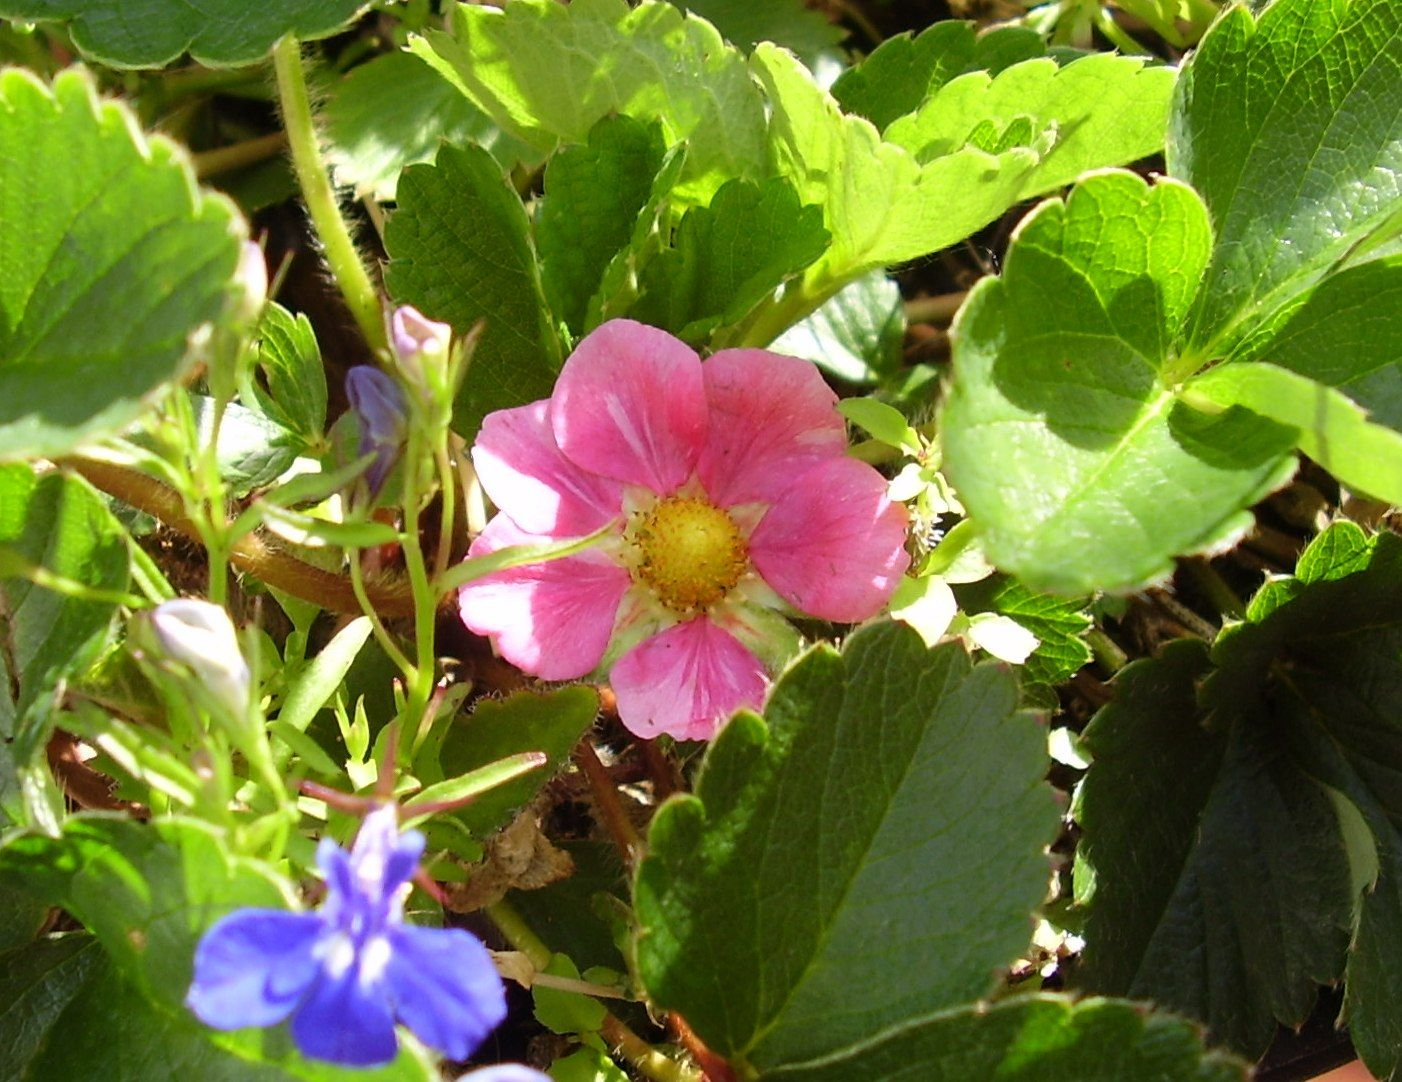 One Of My Strawberry Plants Has Pink Flowers Nov19 Gwr The